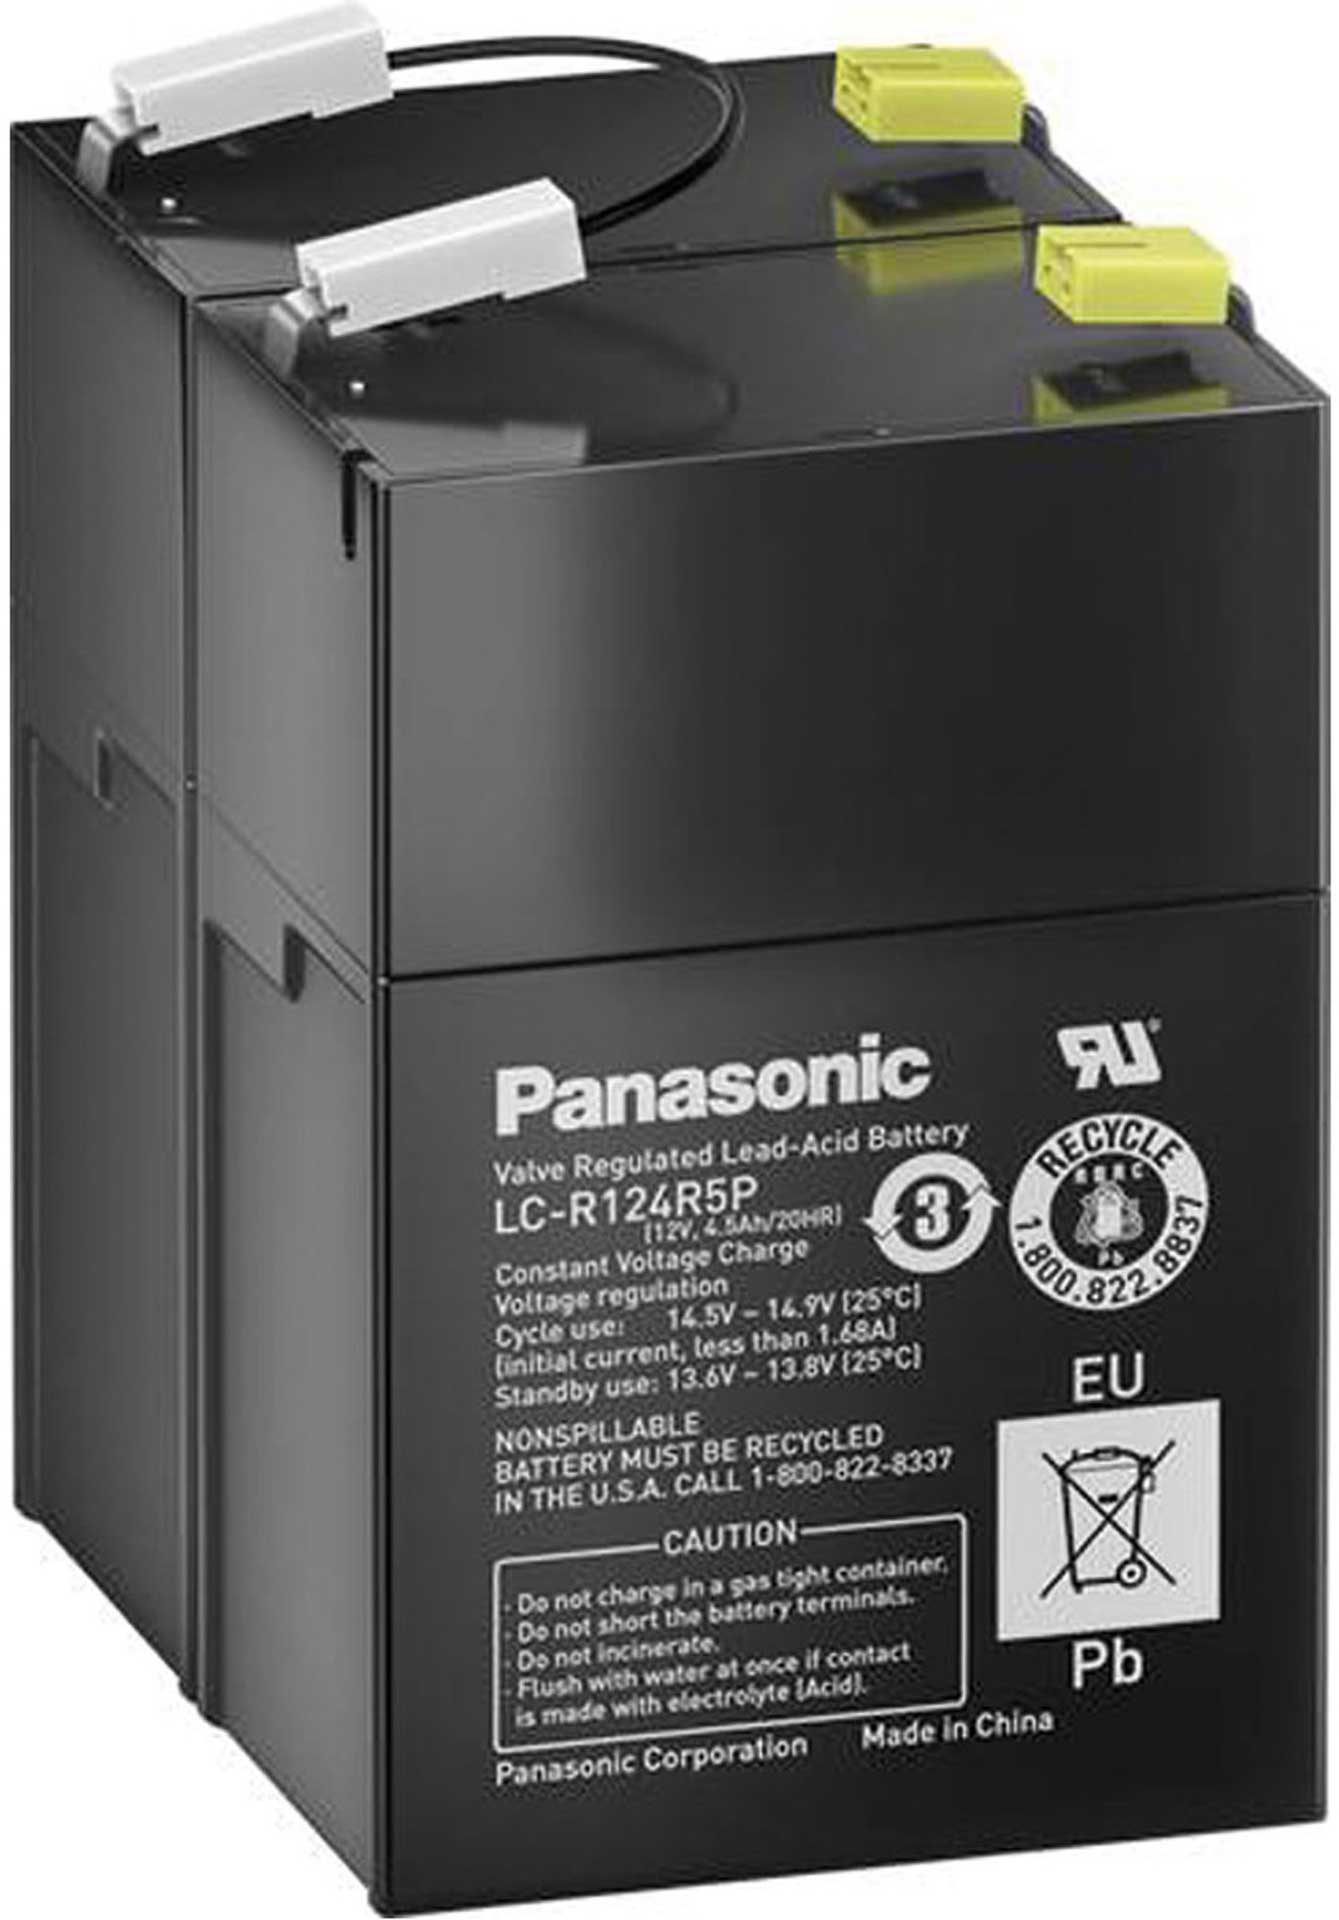 PANASONIC LEAD BATTERY 12V 4,5AH LC-R124R5PD G 108MM7B 70MM/T 97MM